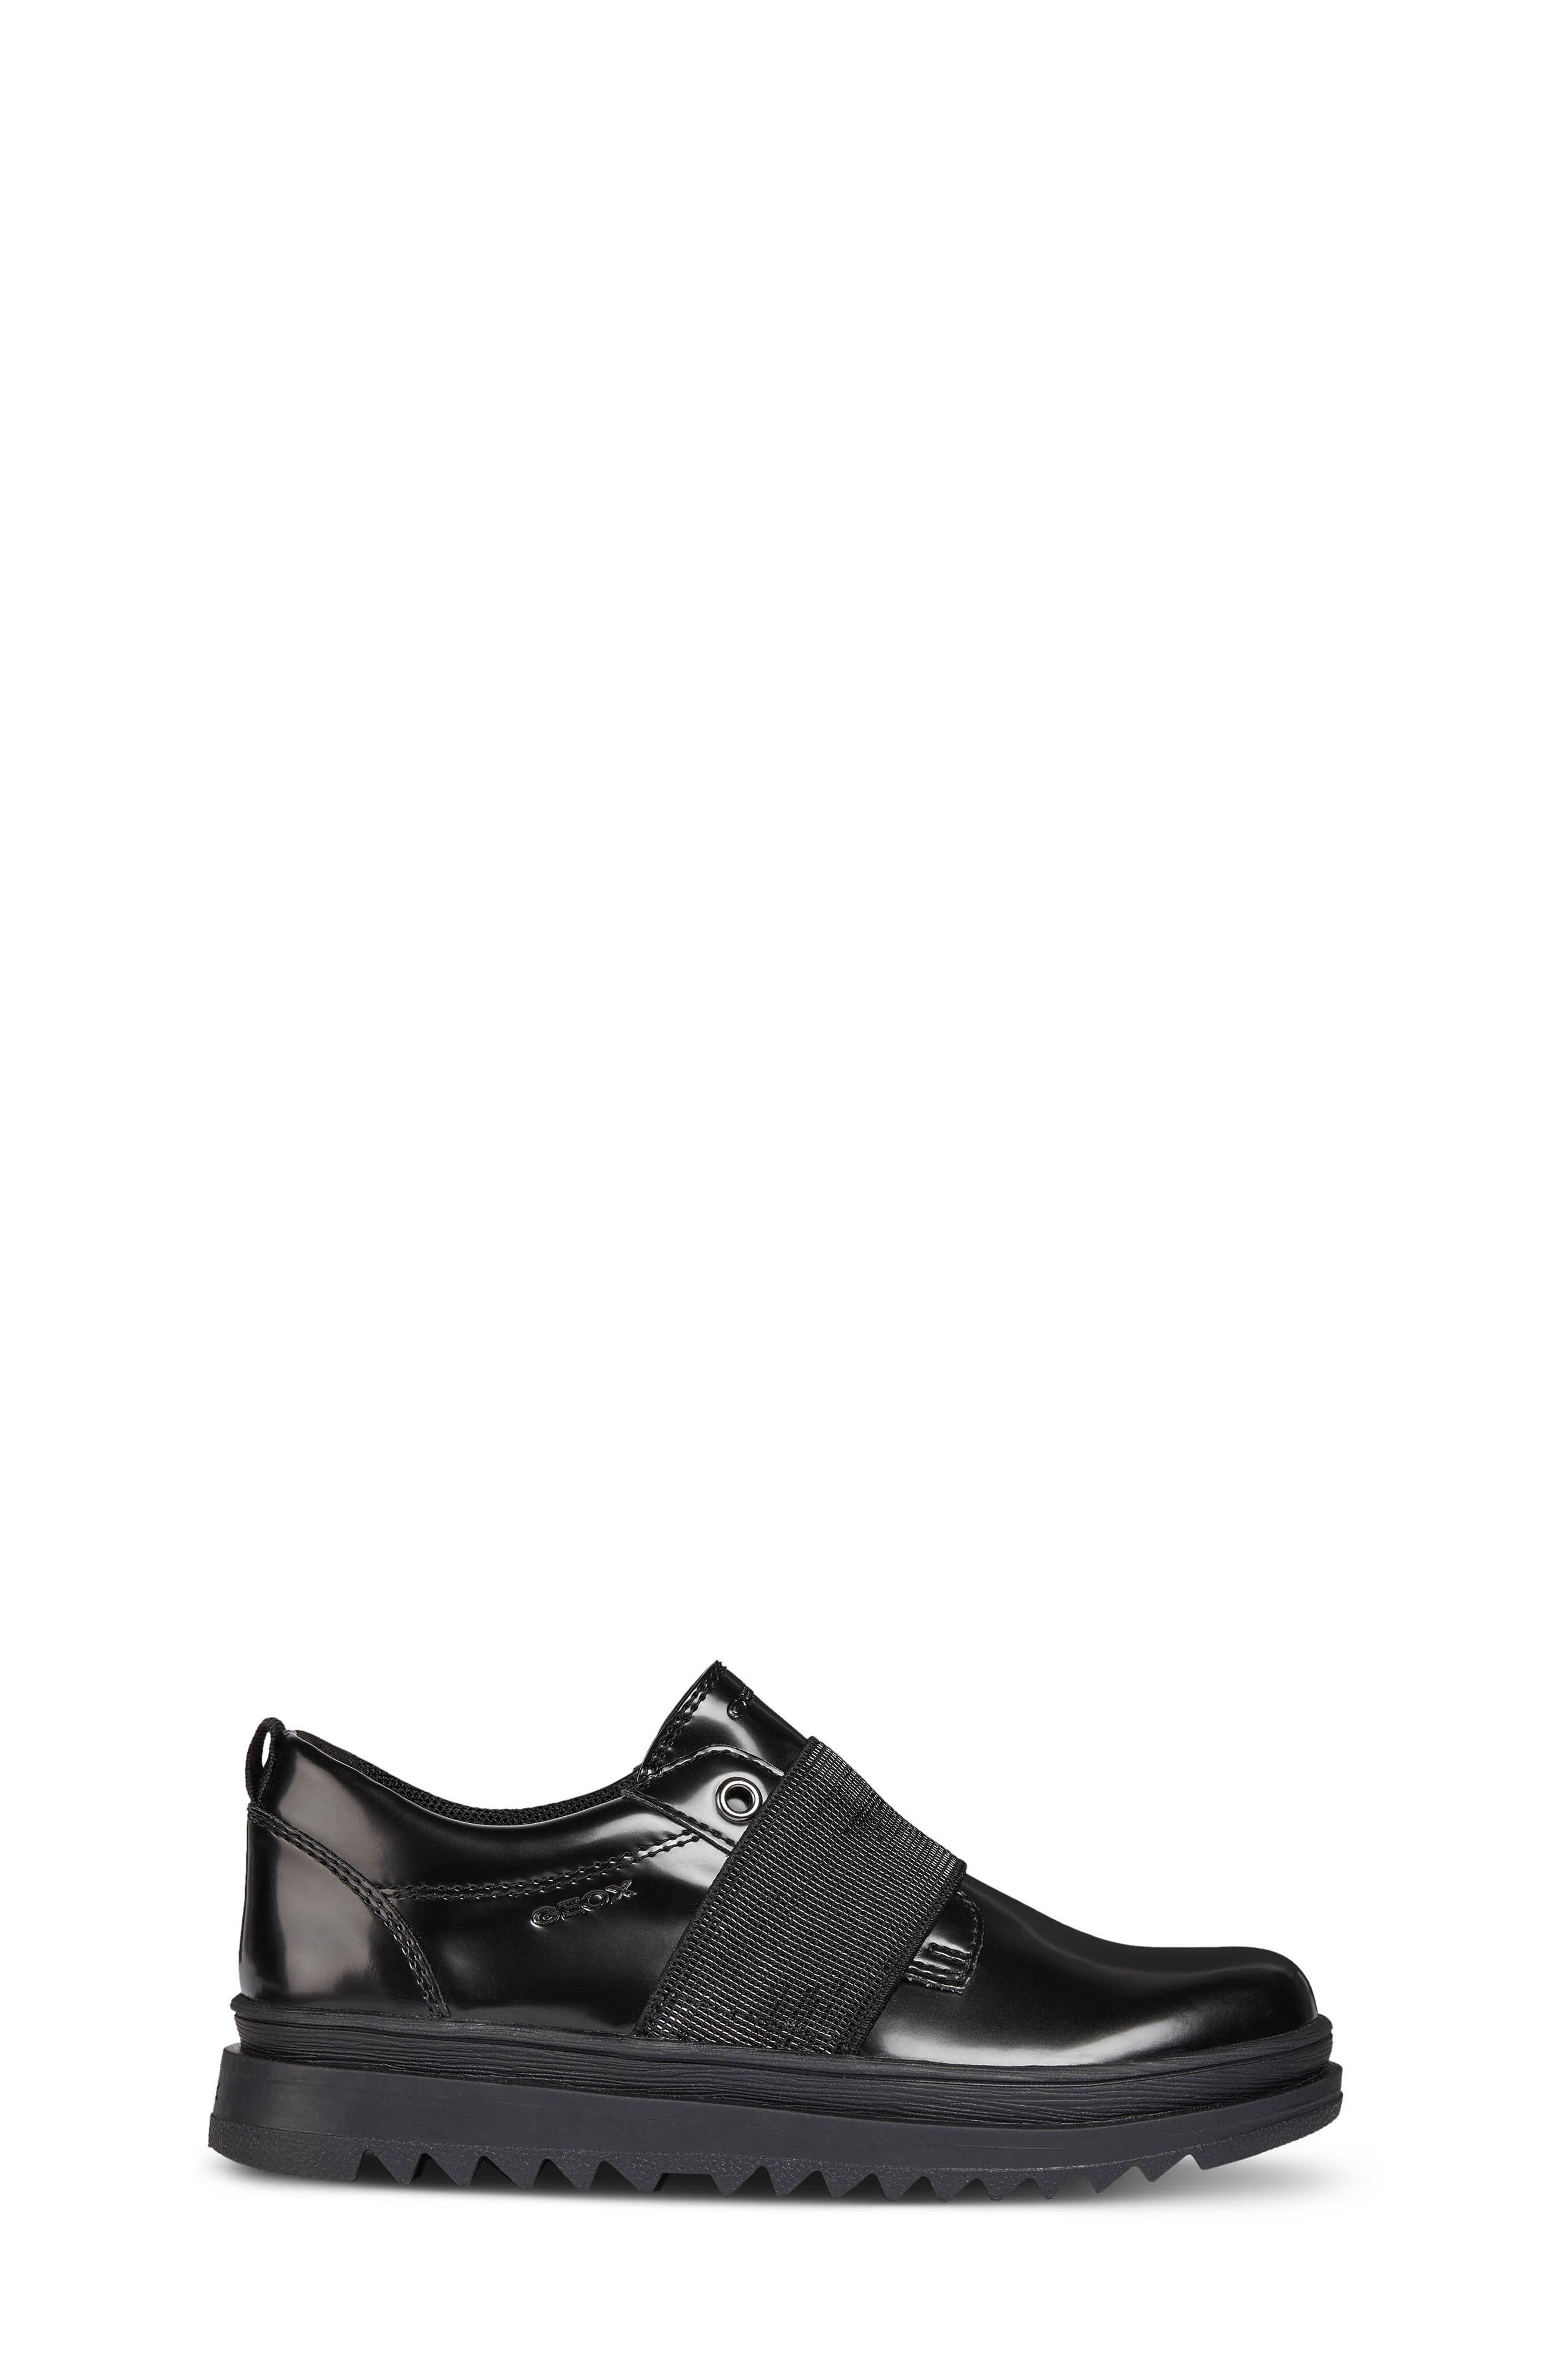 Gilly Jaw Sneaker,                             Alternate thumbnail 3, color,                             BLACK